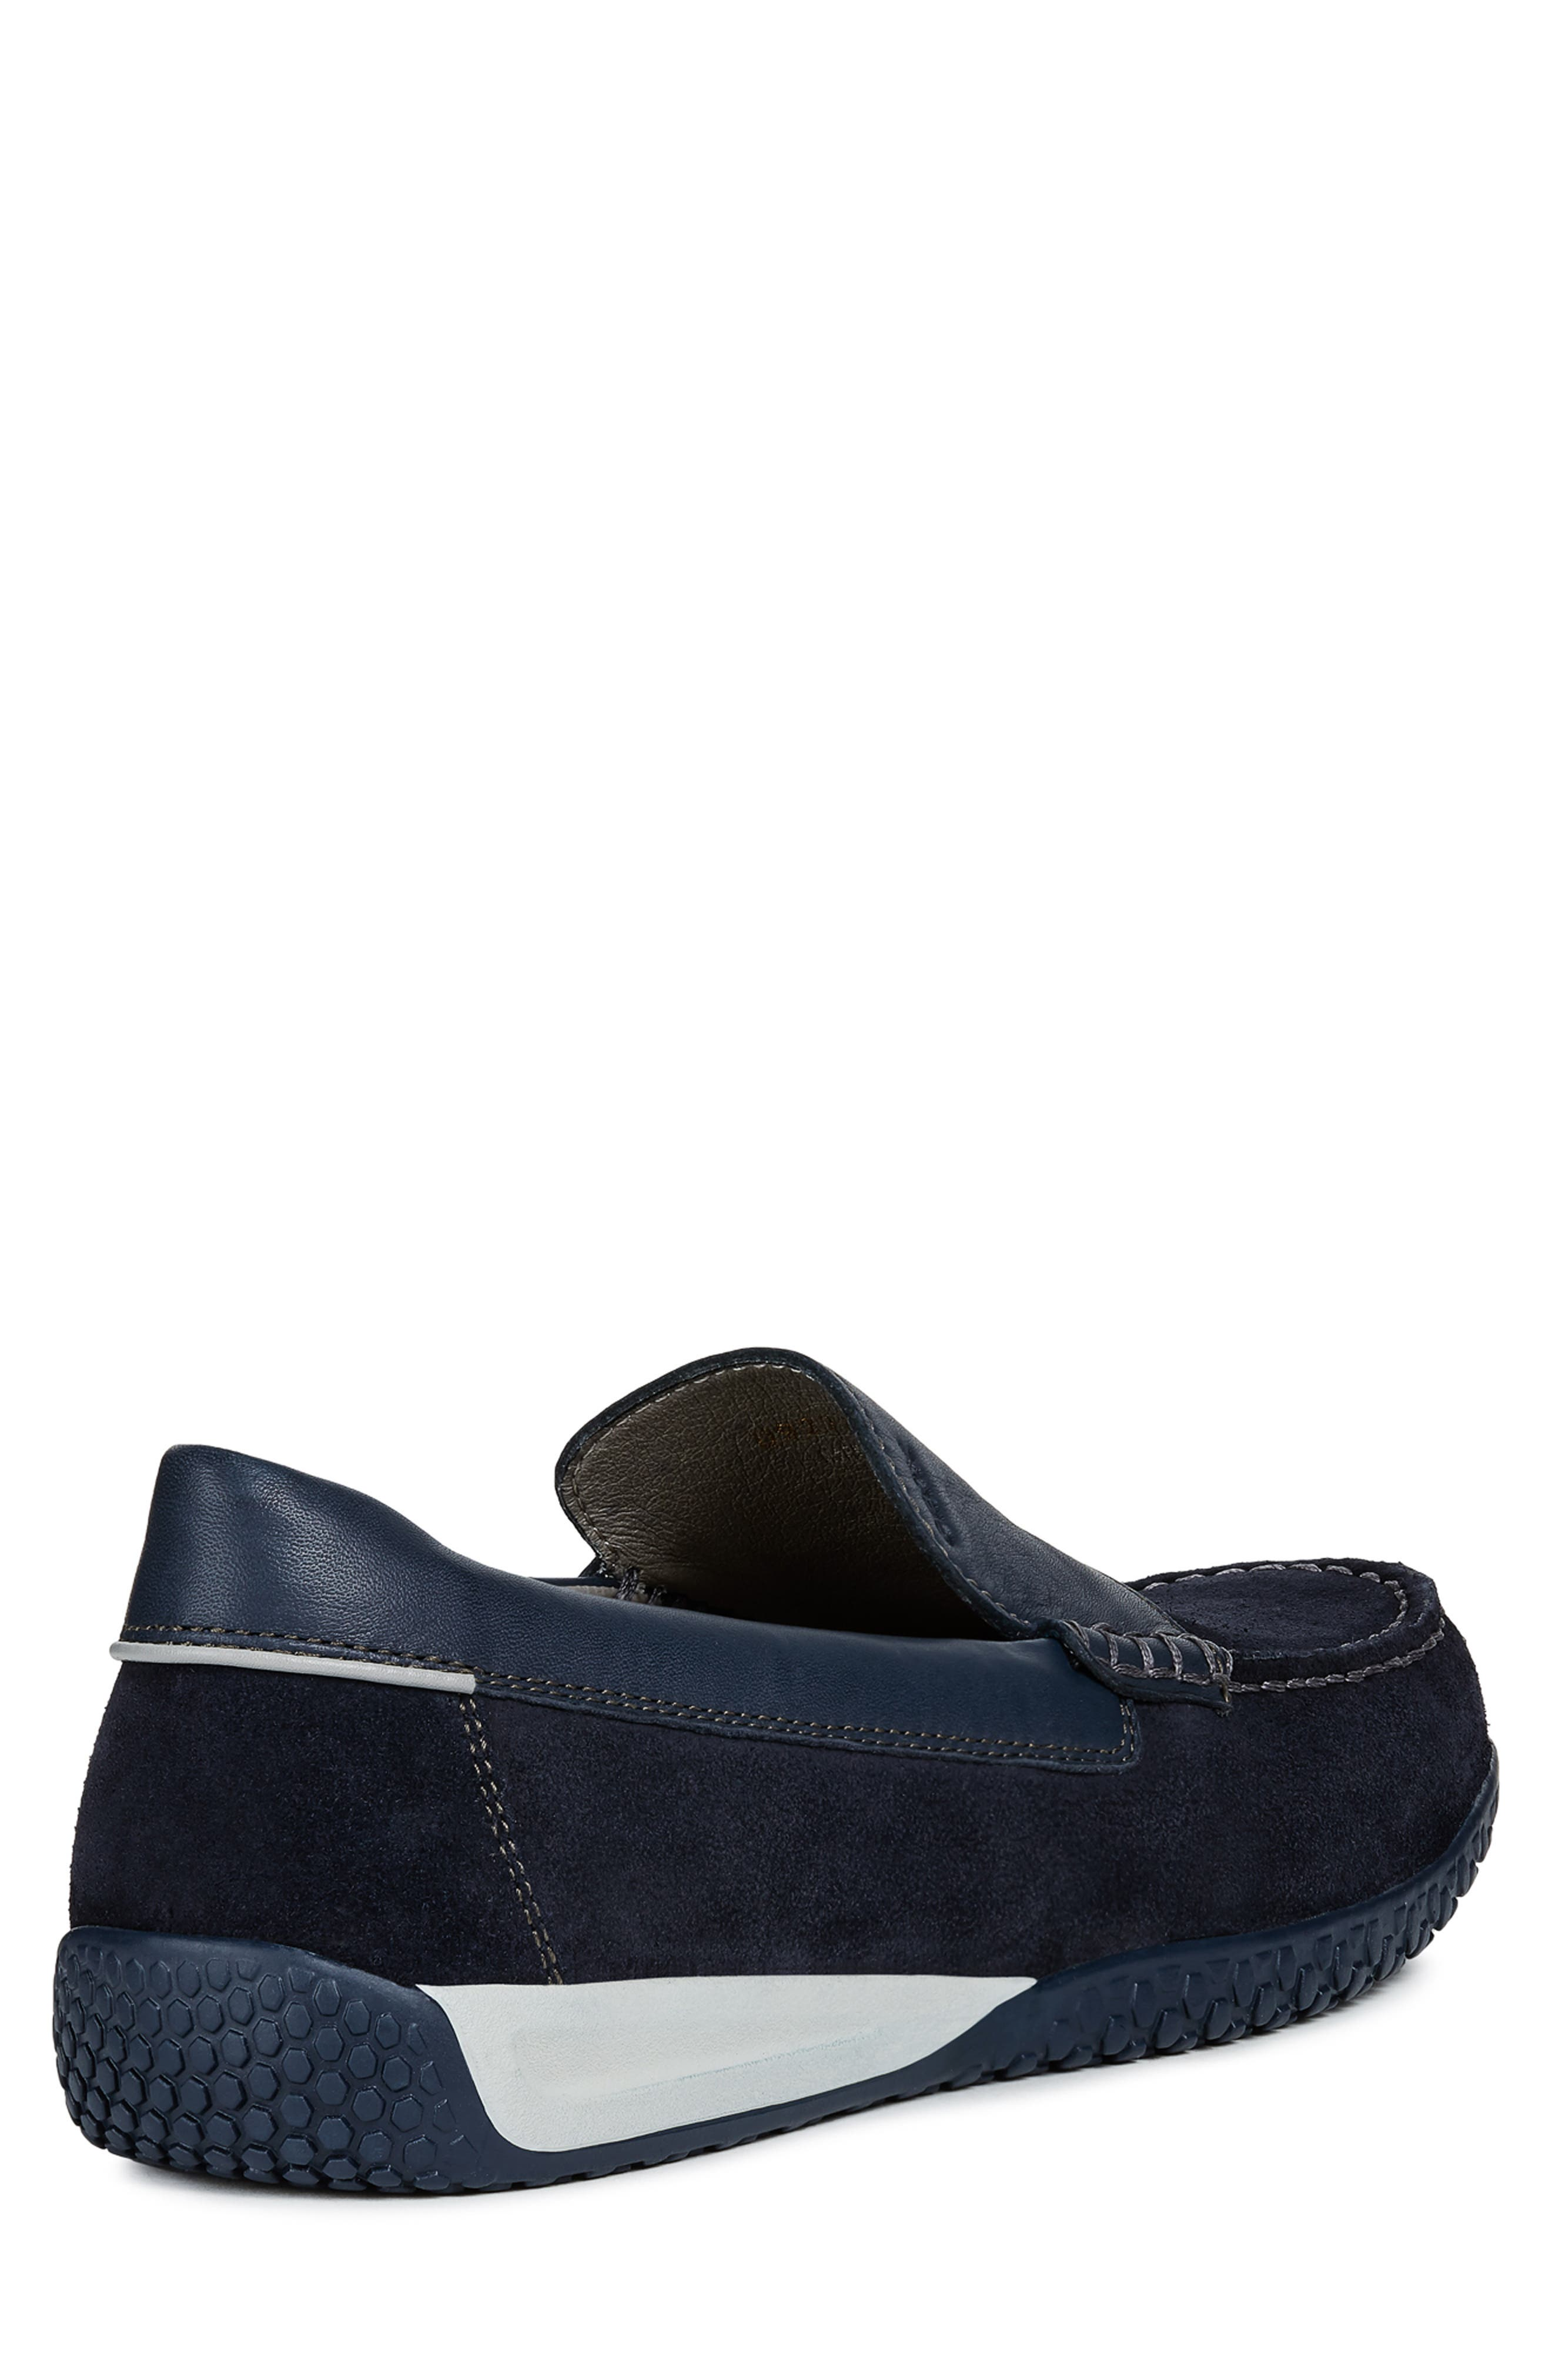 GEOX, Delrick 2 Slip-On, Alternate thumbnail 6, color, NAVY SUEDE/ LEATHER